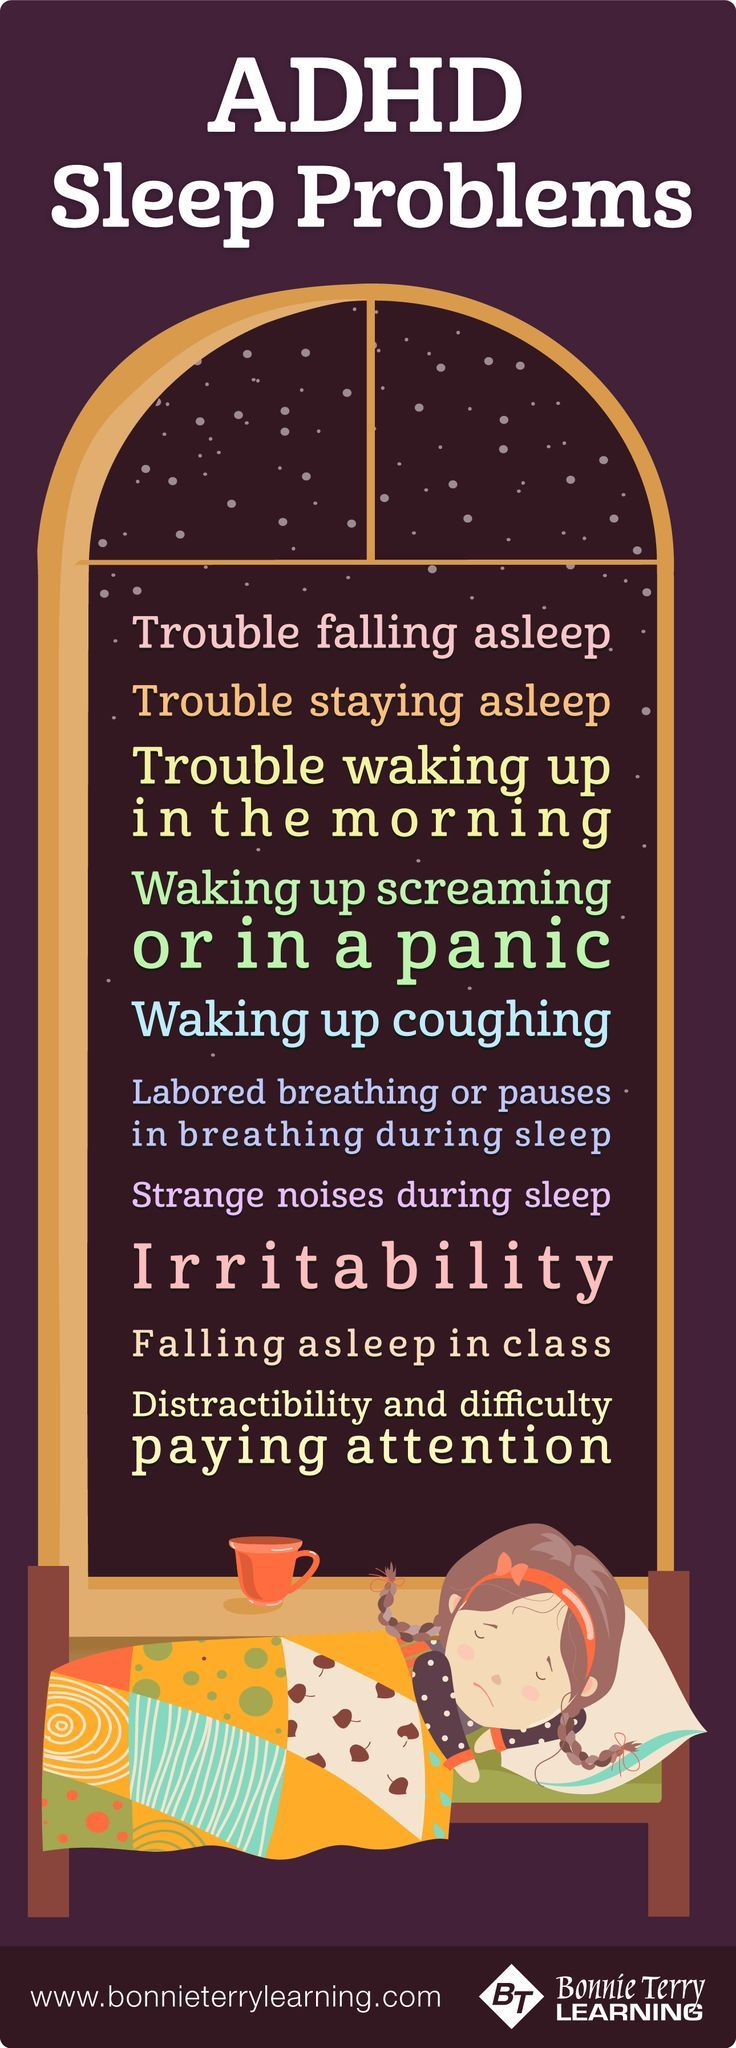 Sleeping tips and bedtime ritual tricks to help everyone at home get a good night's rest.  https://www.bonnieterrylearning.com/blog/adhd-sleep-problems-learning/